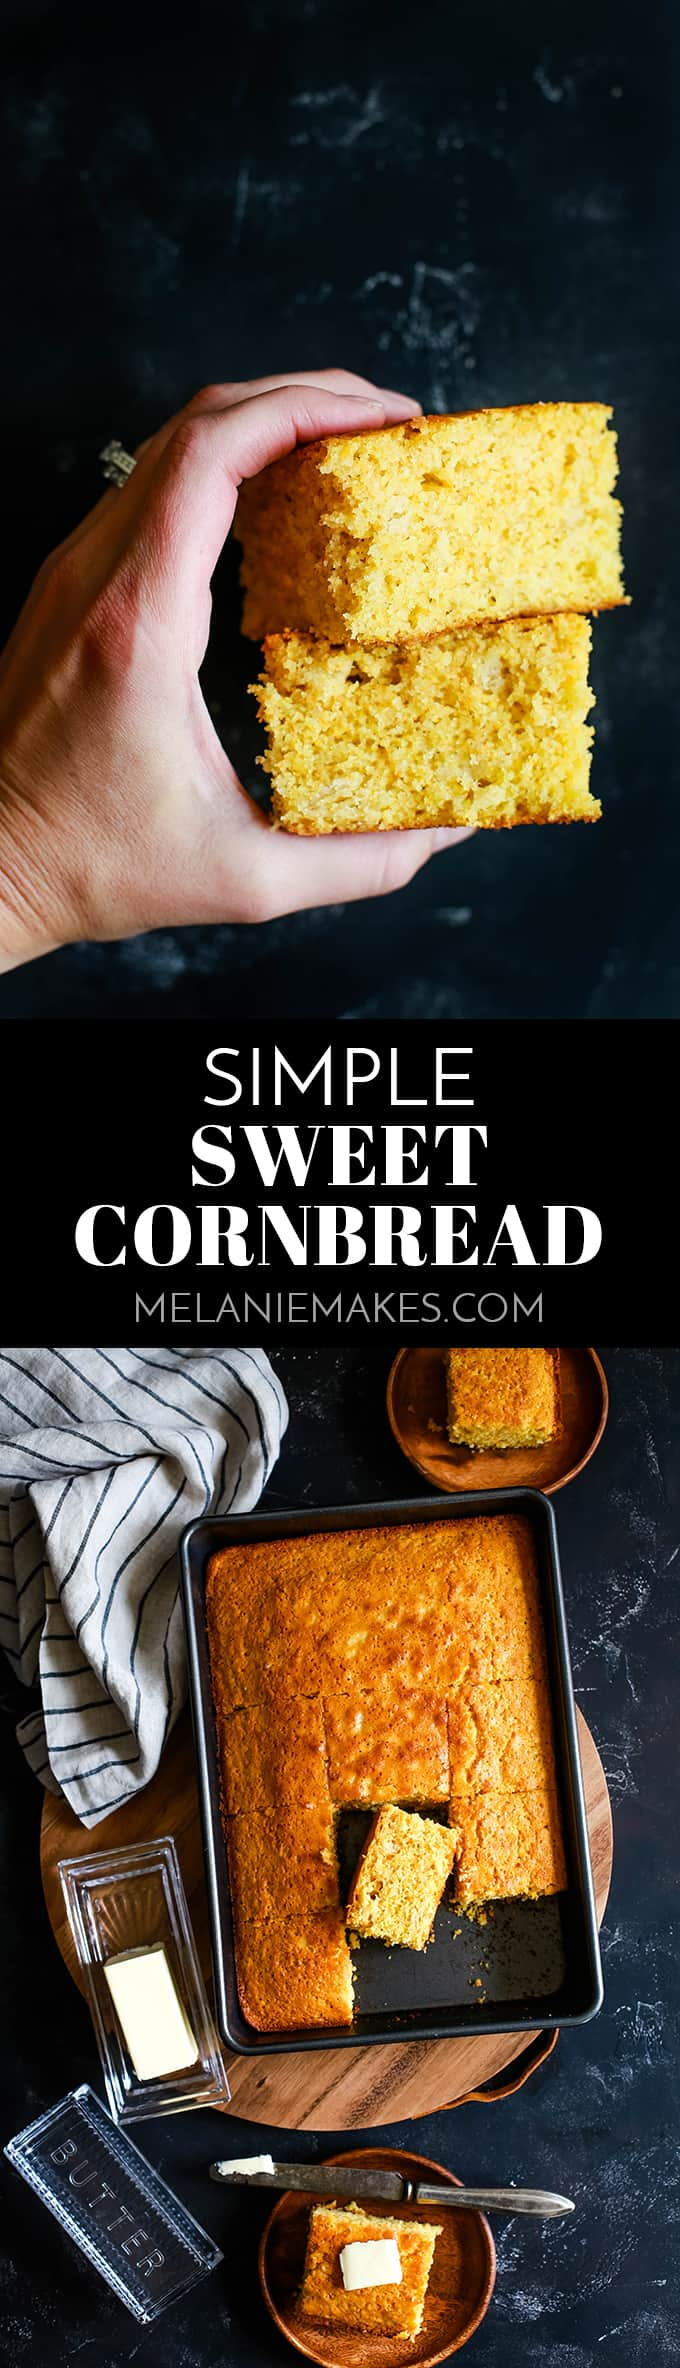 Quick and easy is the name of the game with this Simple Sweet Cornbread.  The perfect eight ingredient side dish for your favorite soup, chili or stew that takes just 10 minutes to prepare. #cornbread #bread #breadrecipes #easyrecipe #sidedish